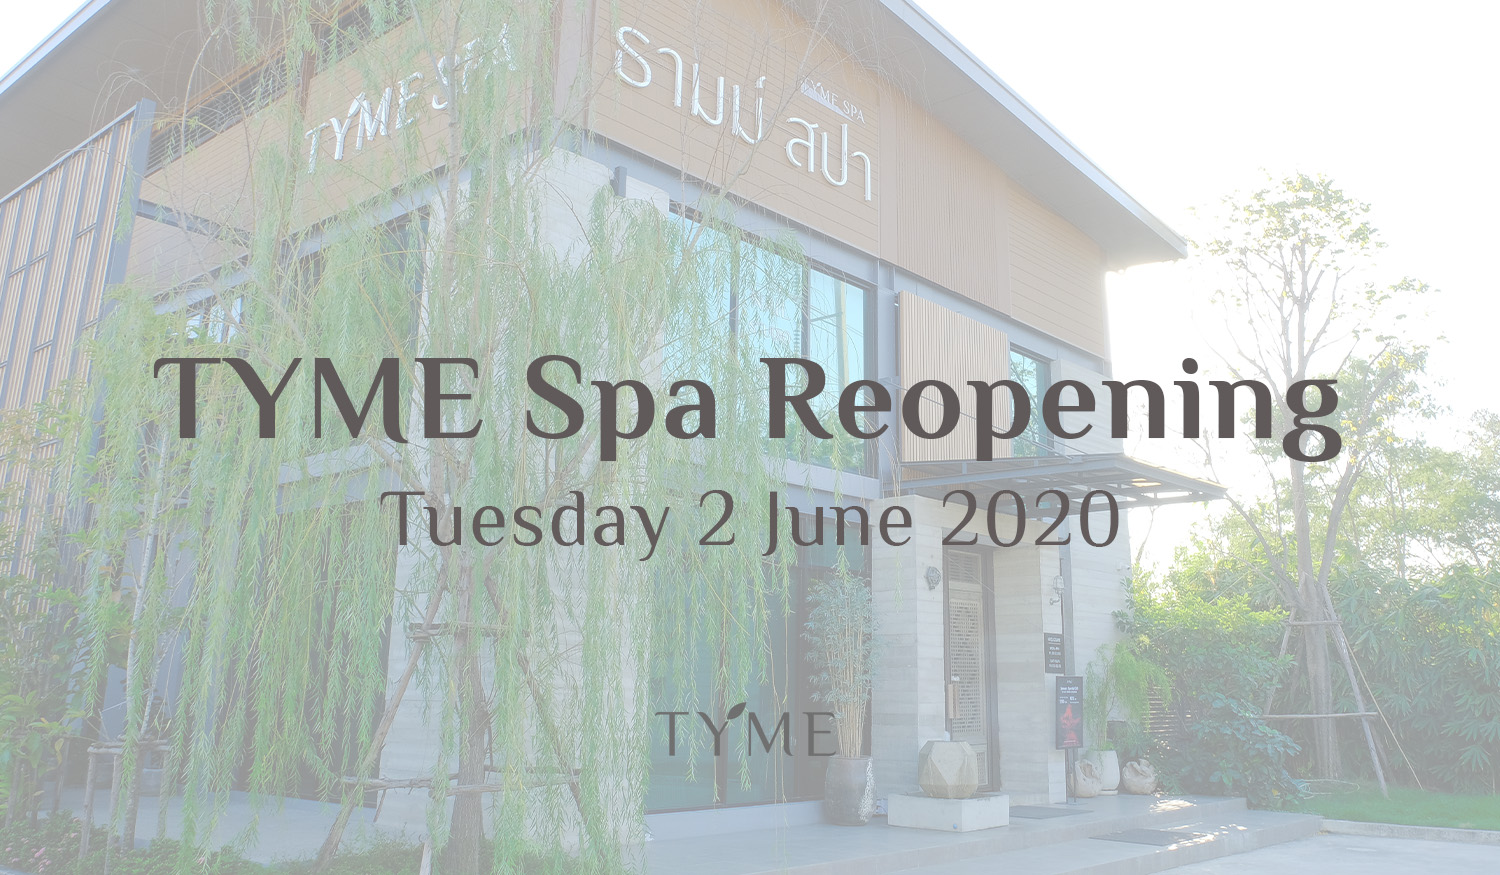 TYME Spa Reopening